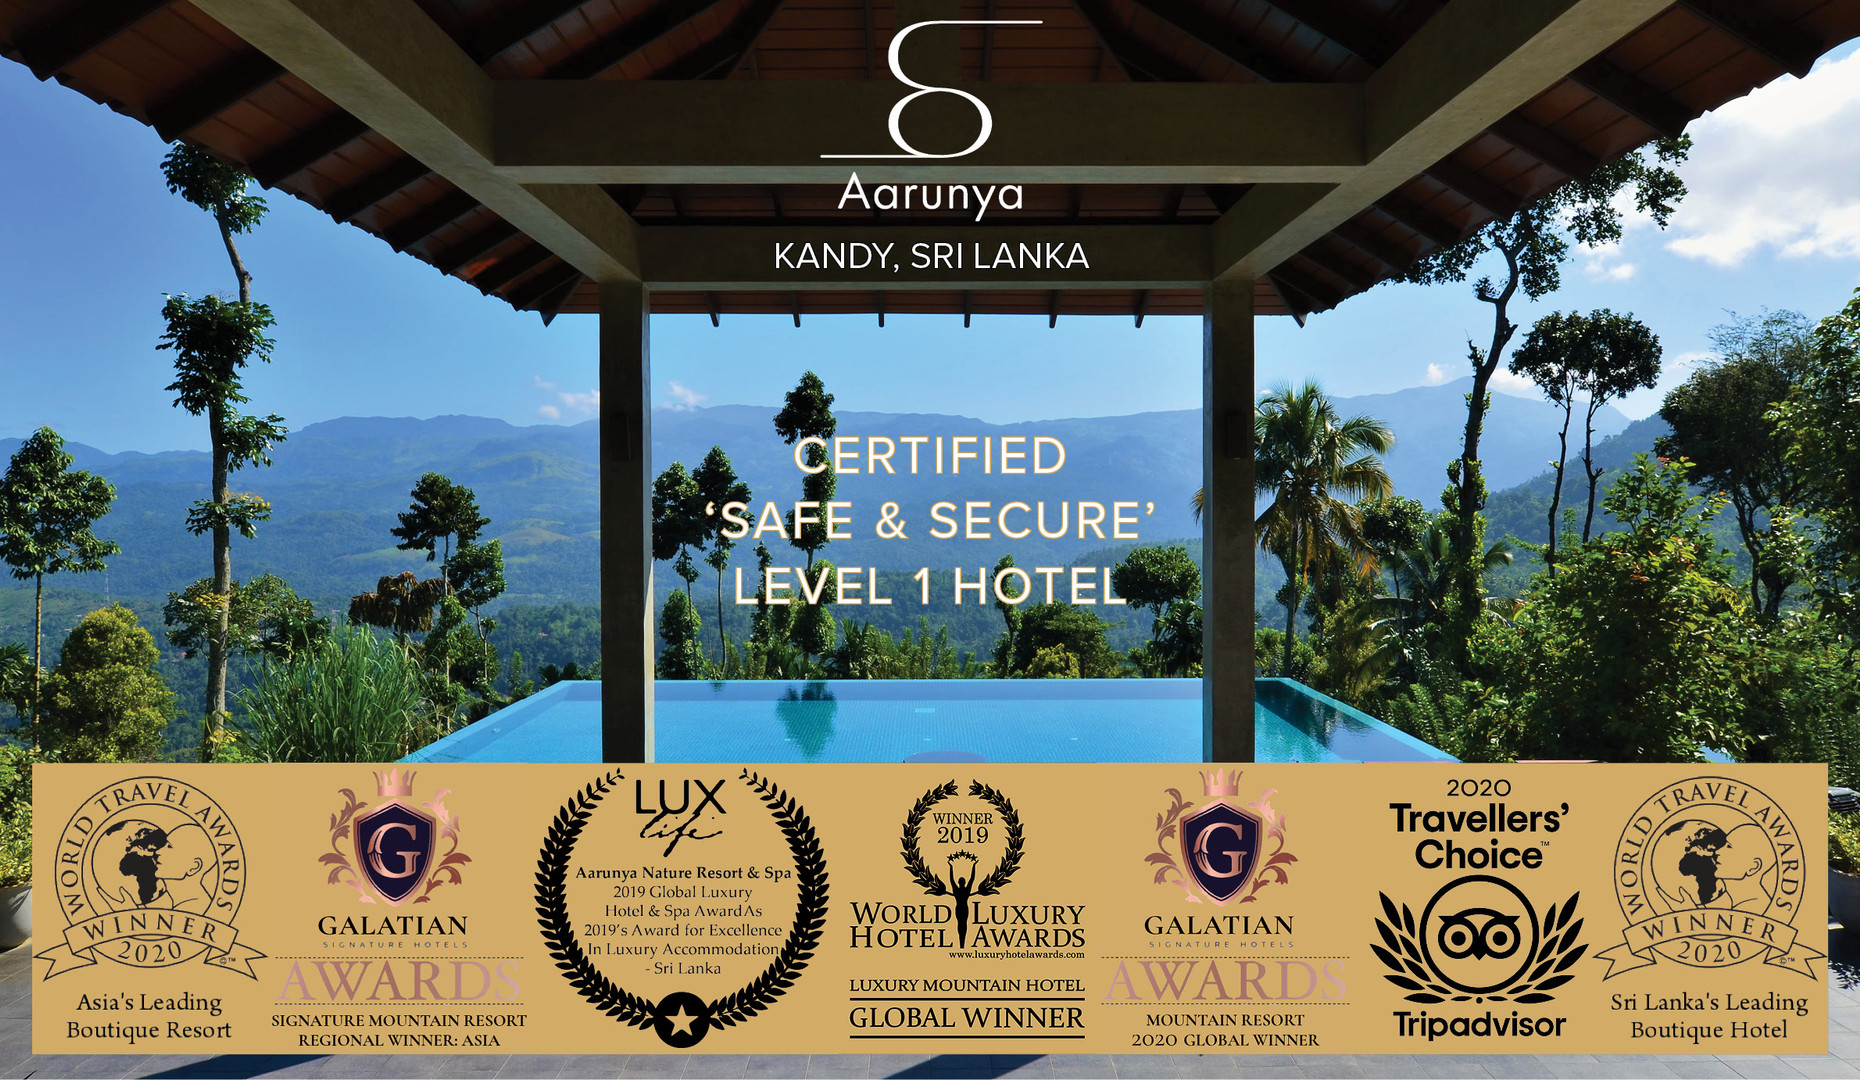 Aarunya is a Certified 'Safe & Secure' Level 1 Hotel & Global Award Winning Hotel Resort.